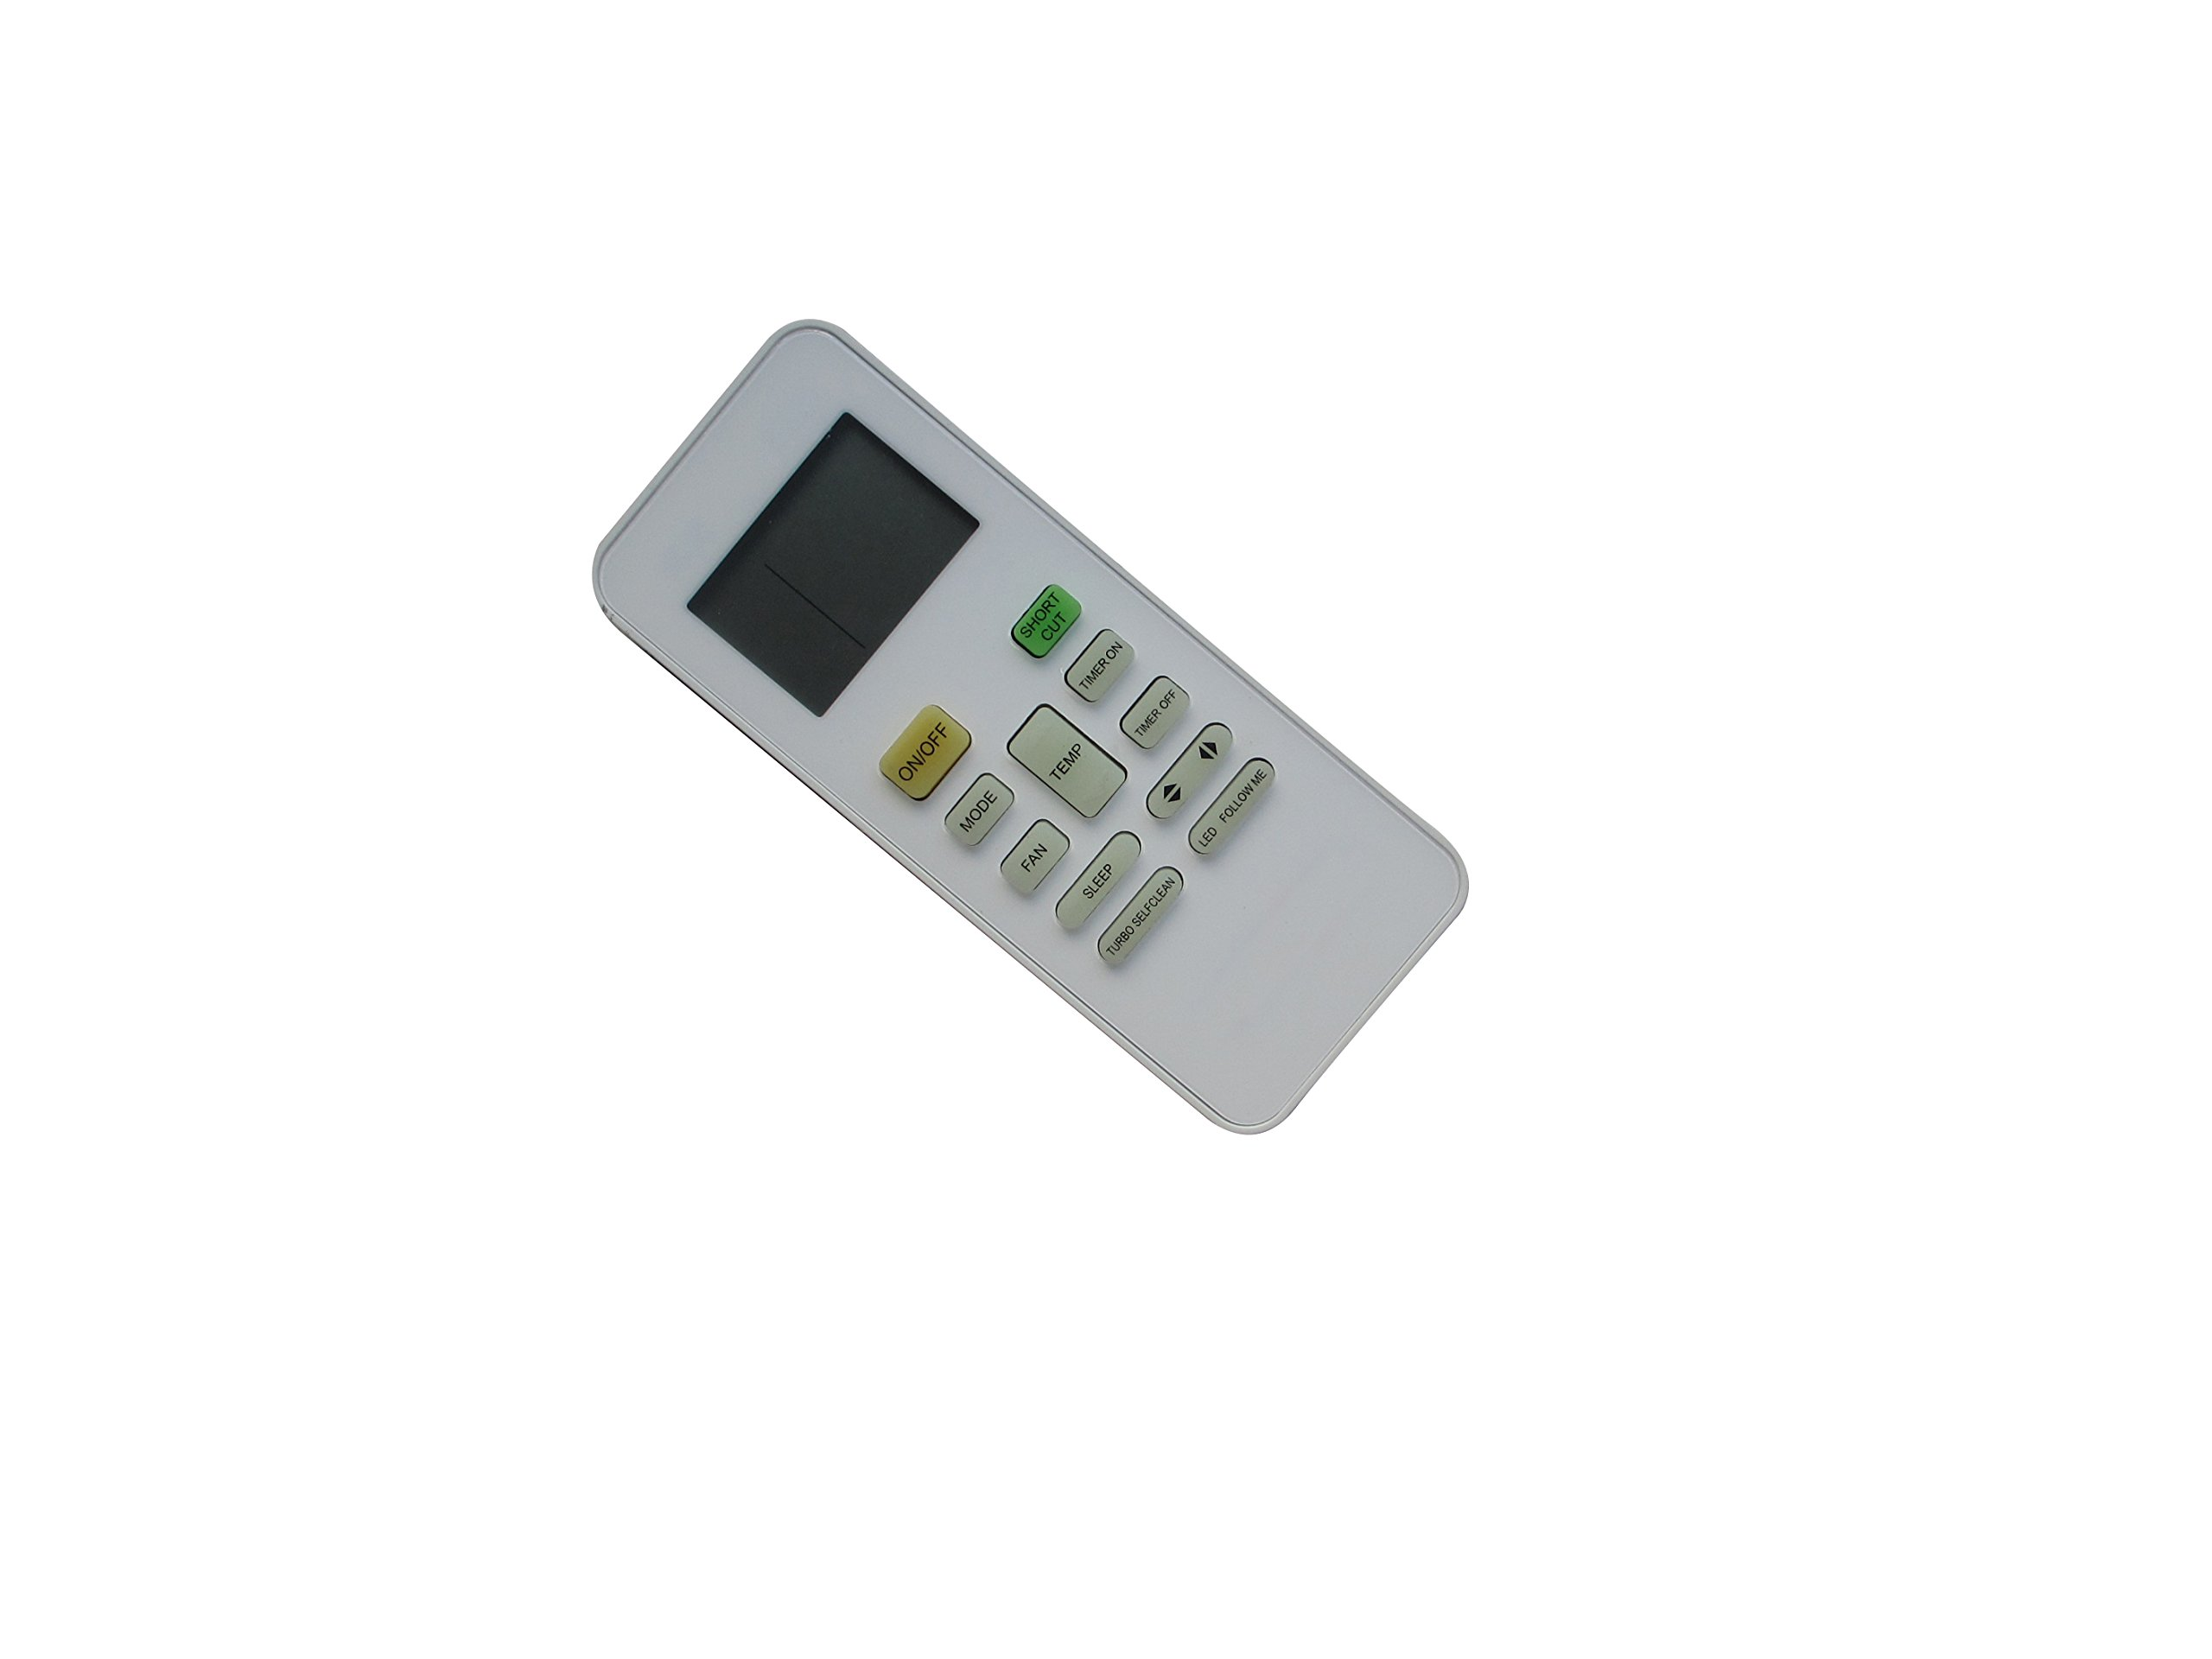 Easytry123 Remote Control For Comfort-aire B-SMA09SC B-SMA12SC B-SMA18SC B-VMH09SC-1 B-VMH12SC-1 B-VMH18SC-1 B-VMH24SC-1 Air Condtioner